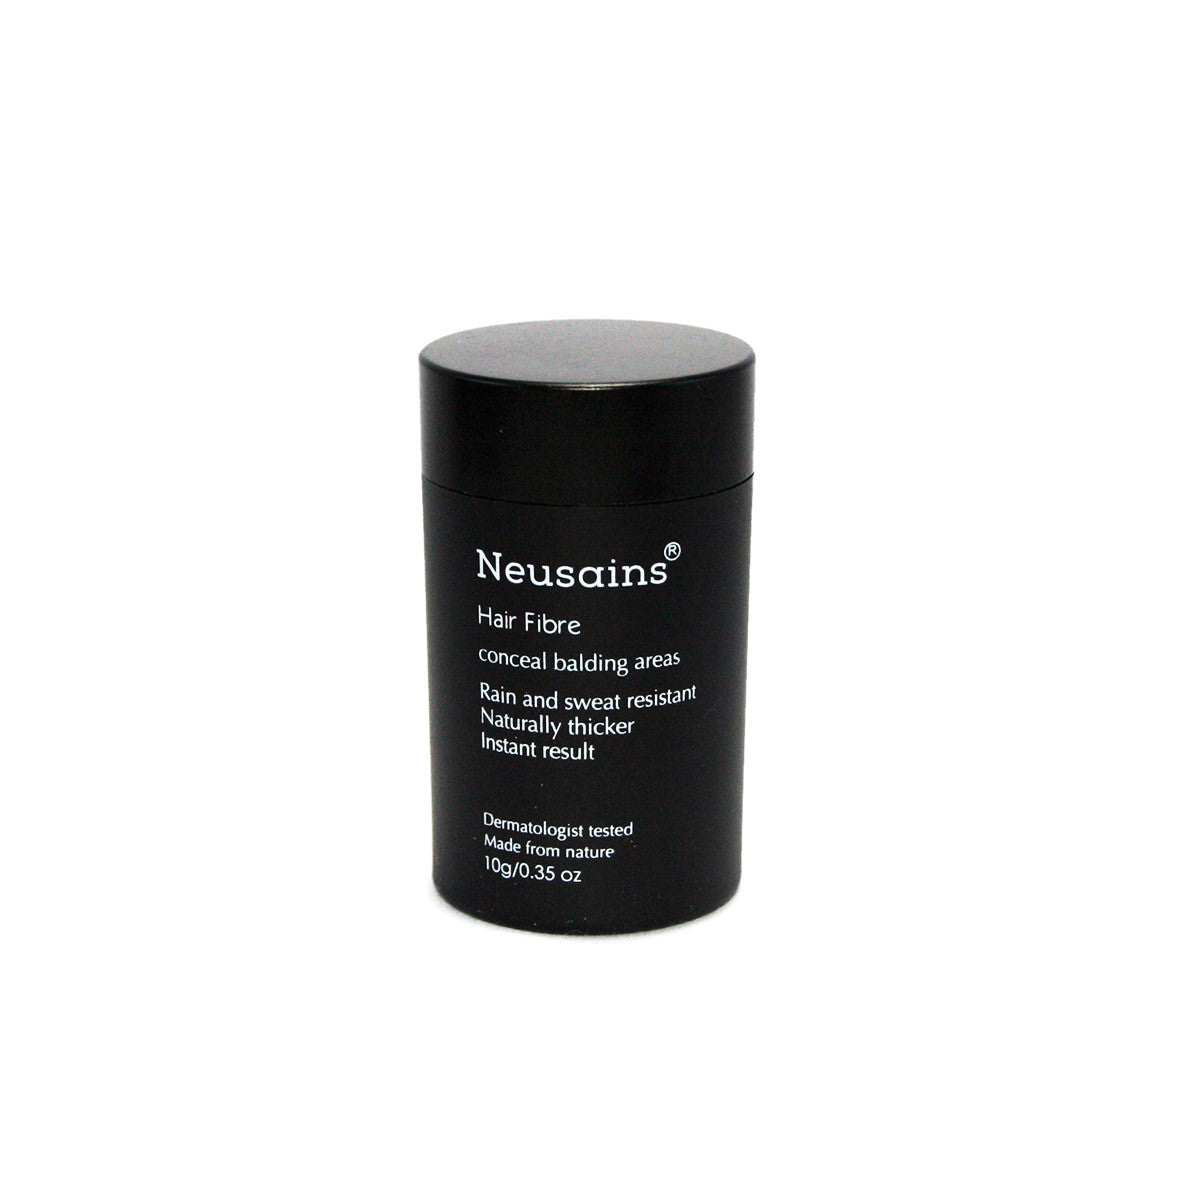 Neusains Travel Size 10g